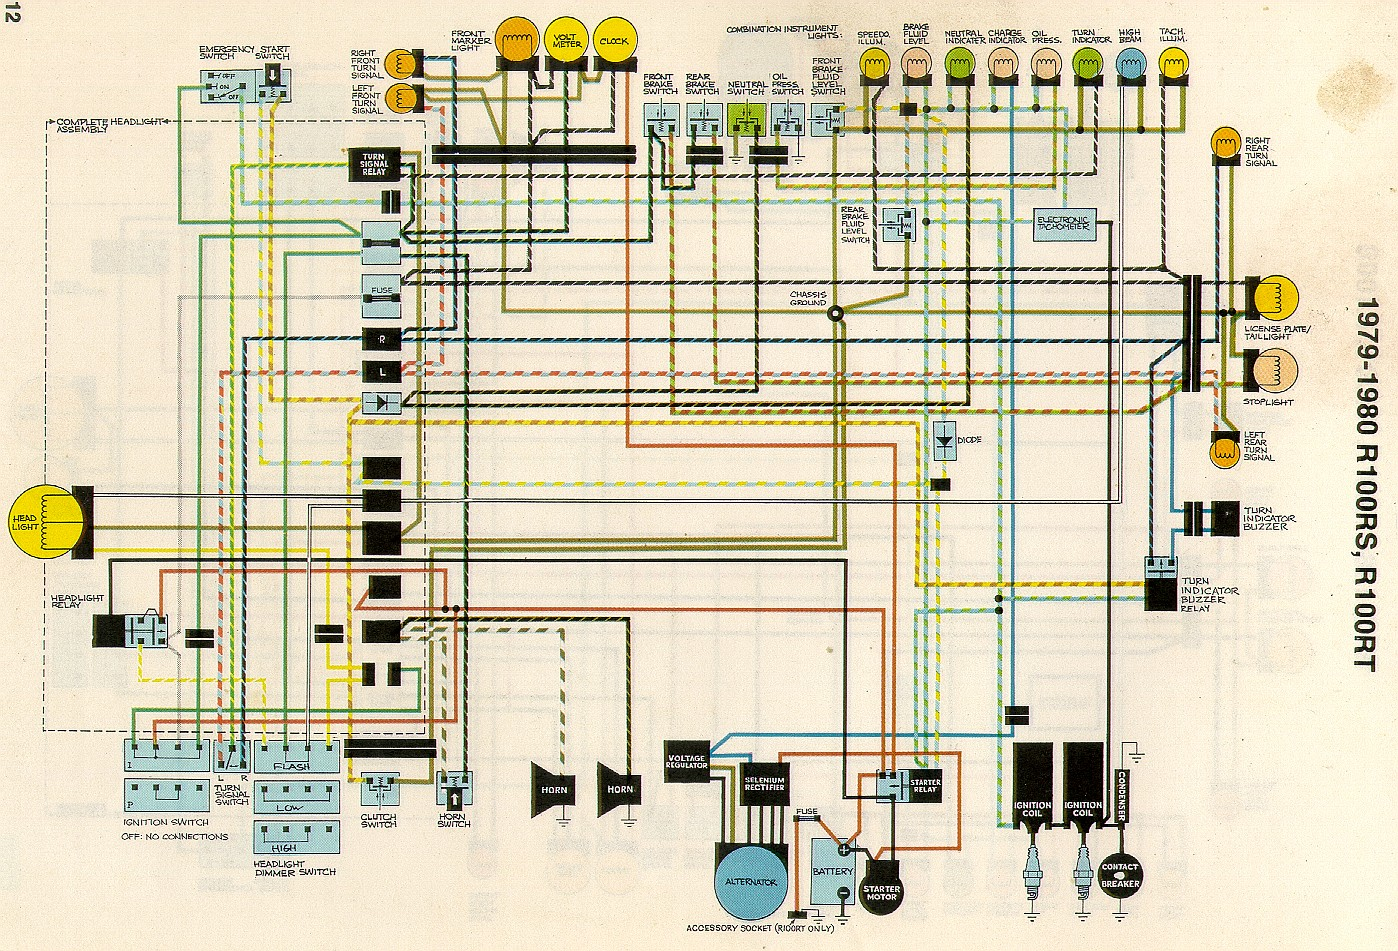 79rs 5 united articles wiring diagrams bmw r100rs gauge wiring diagram at sewacar.co